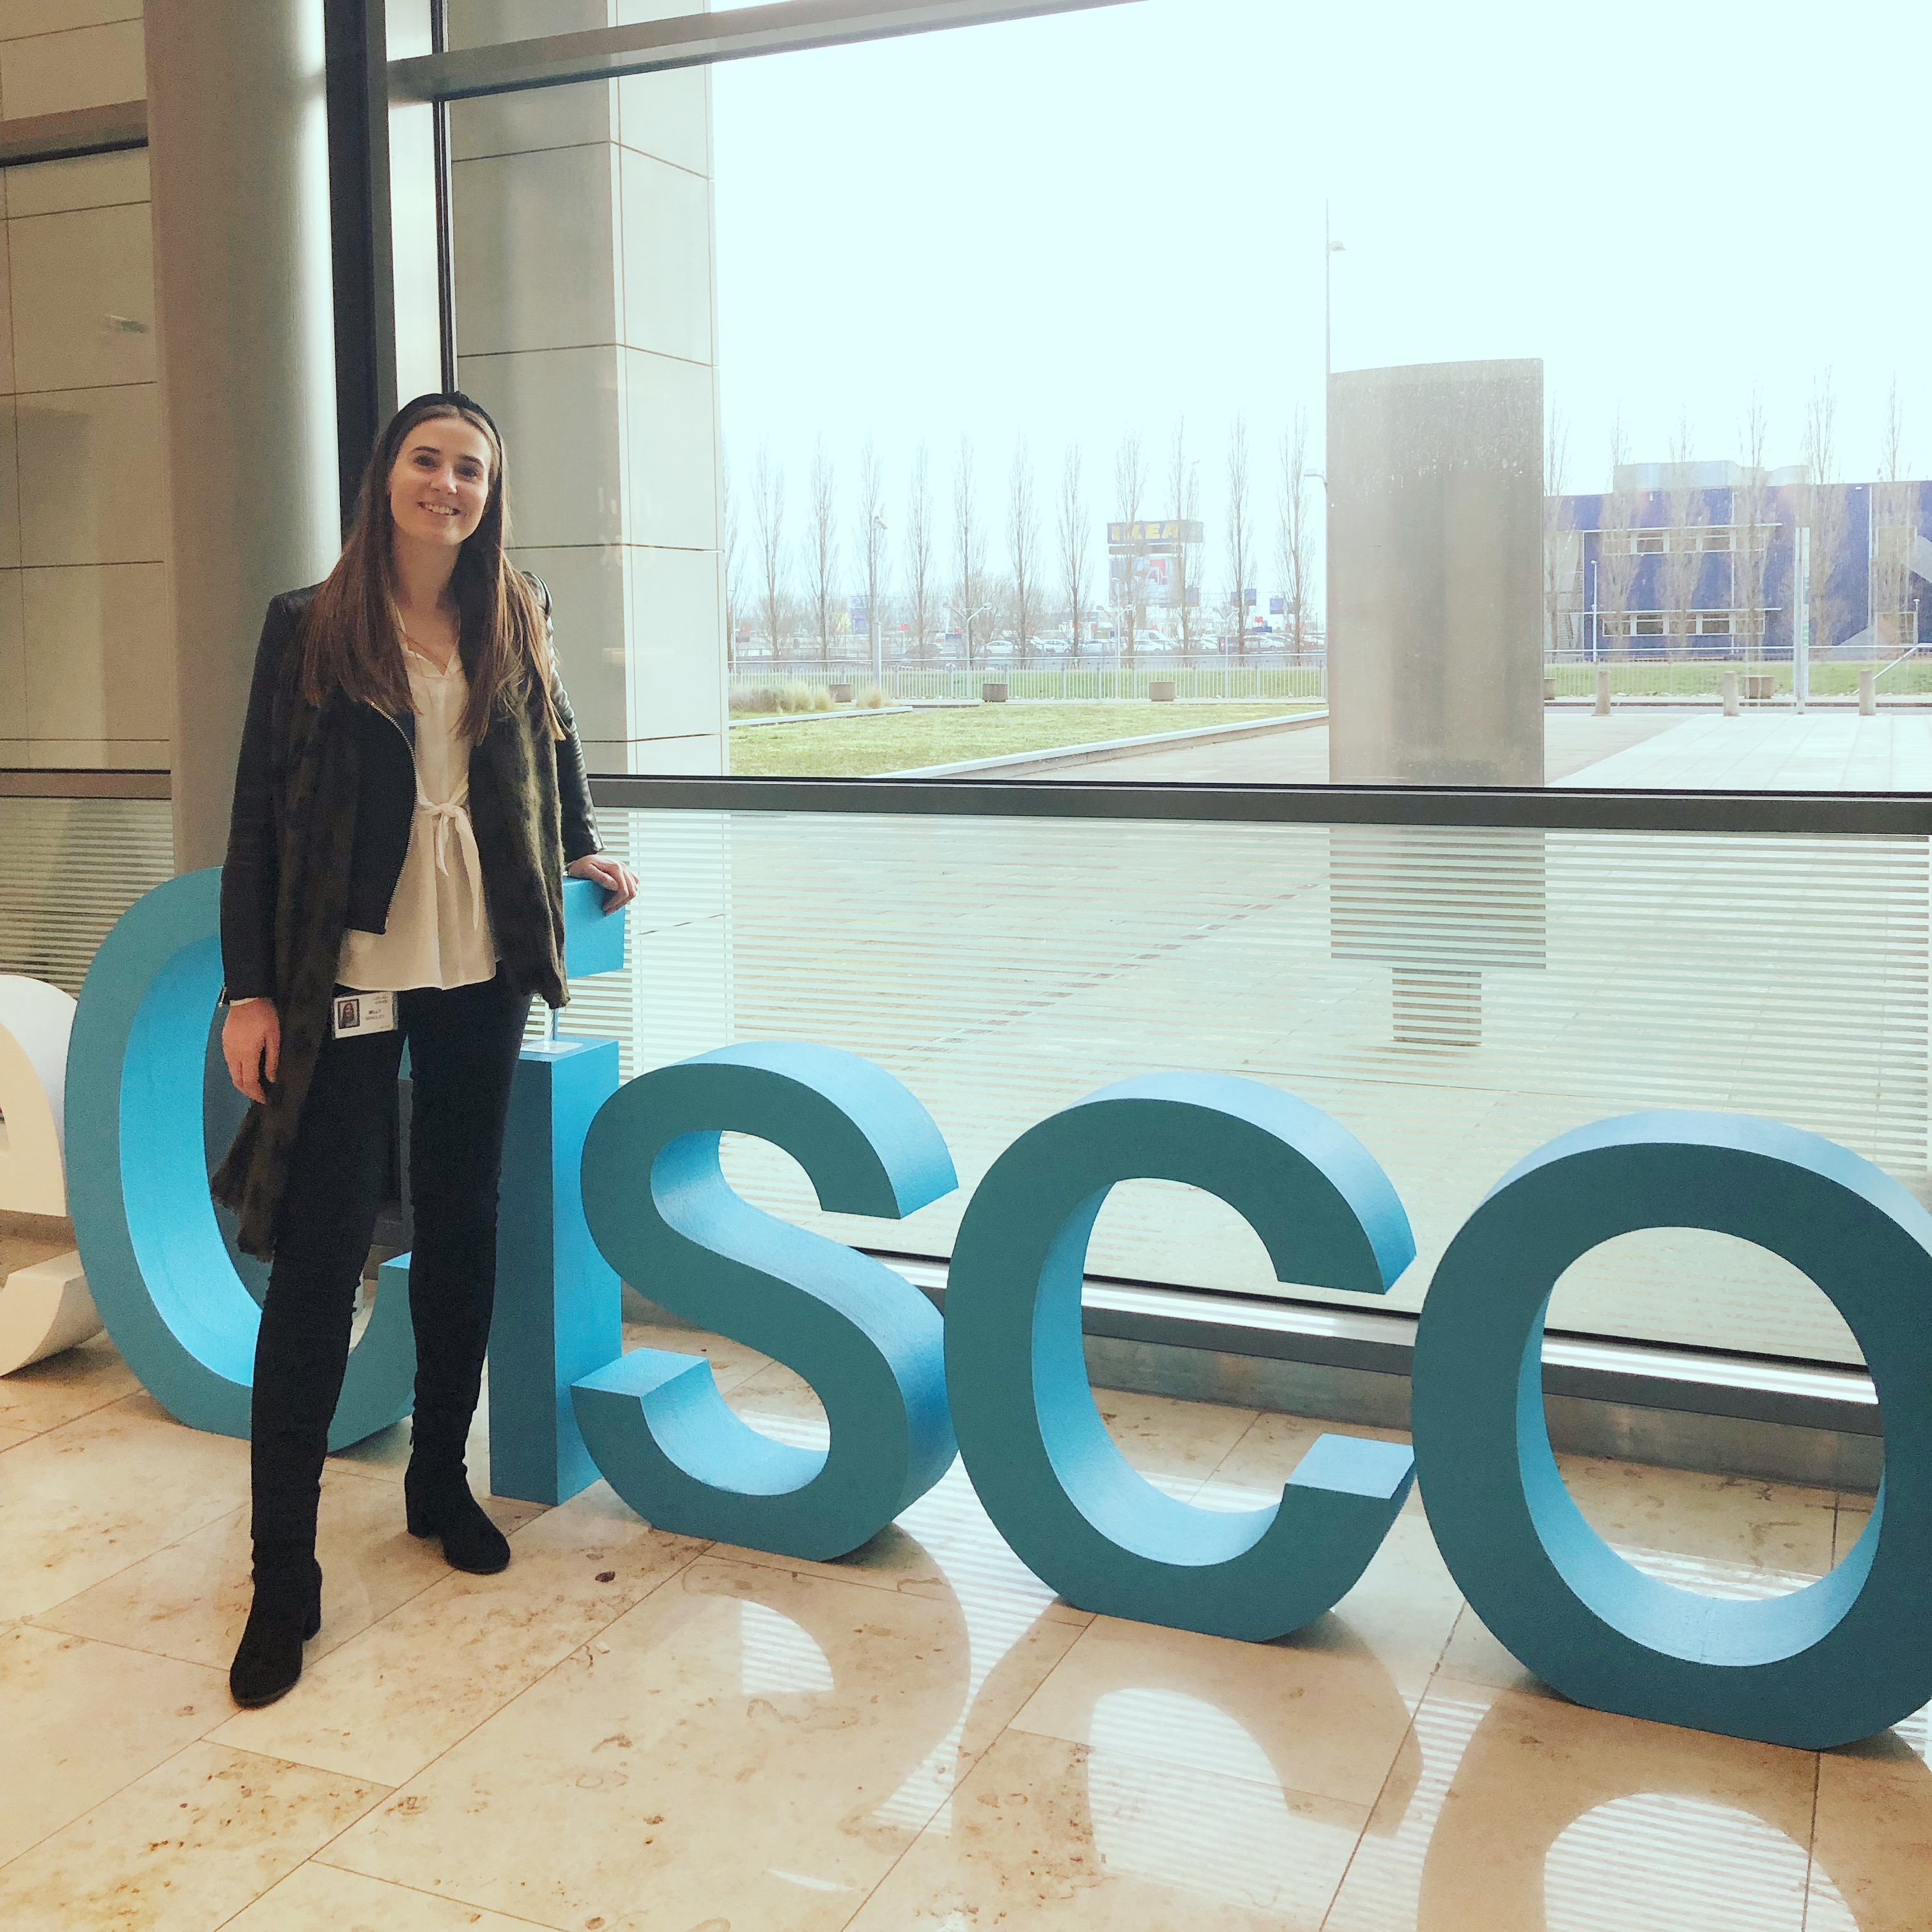 Milly stands in front of 3-D letters spelling out Cisco